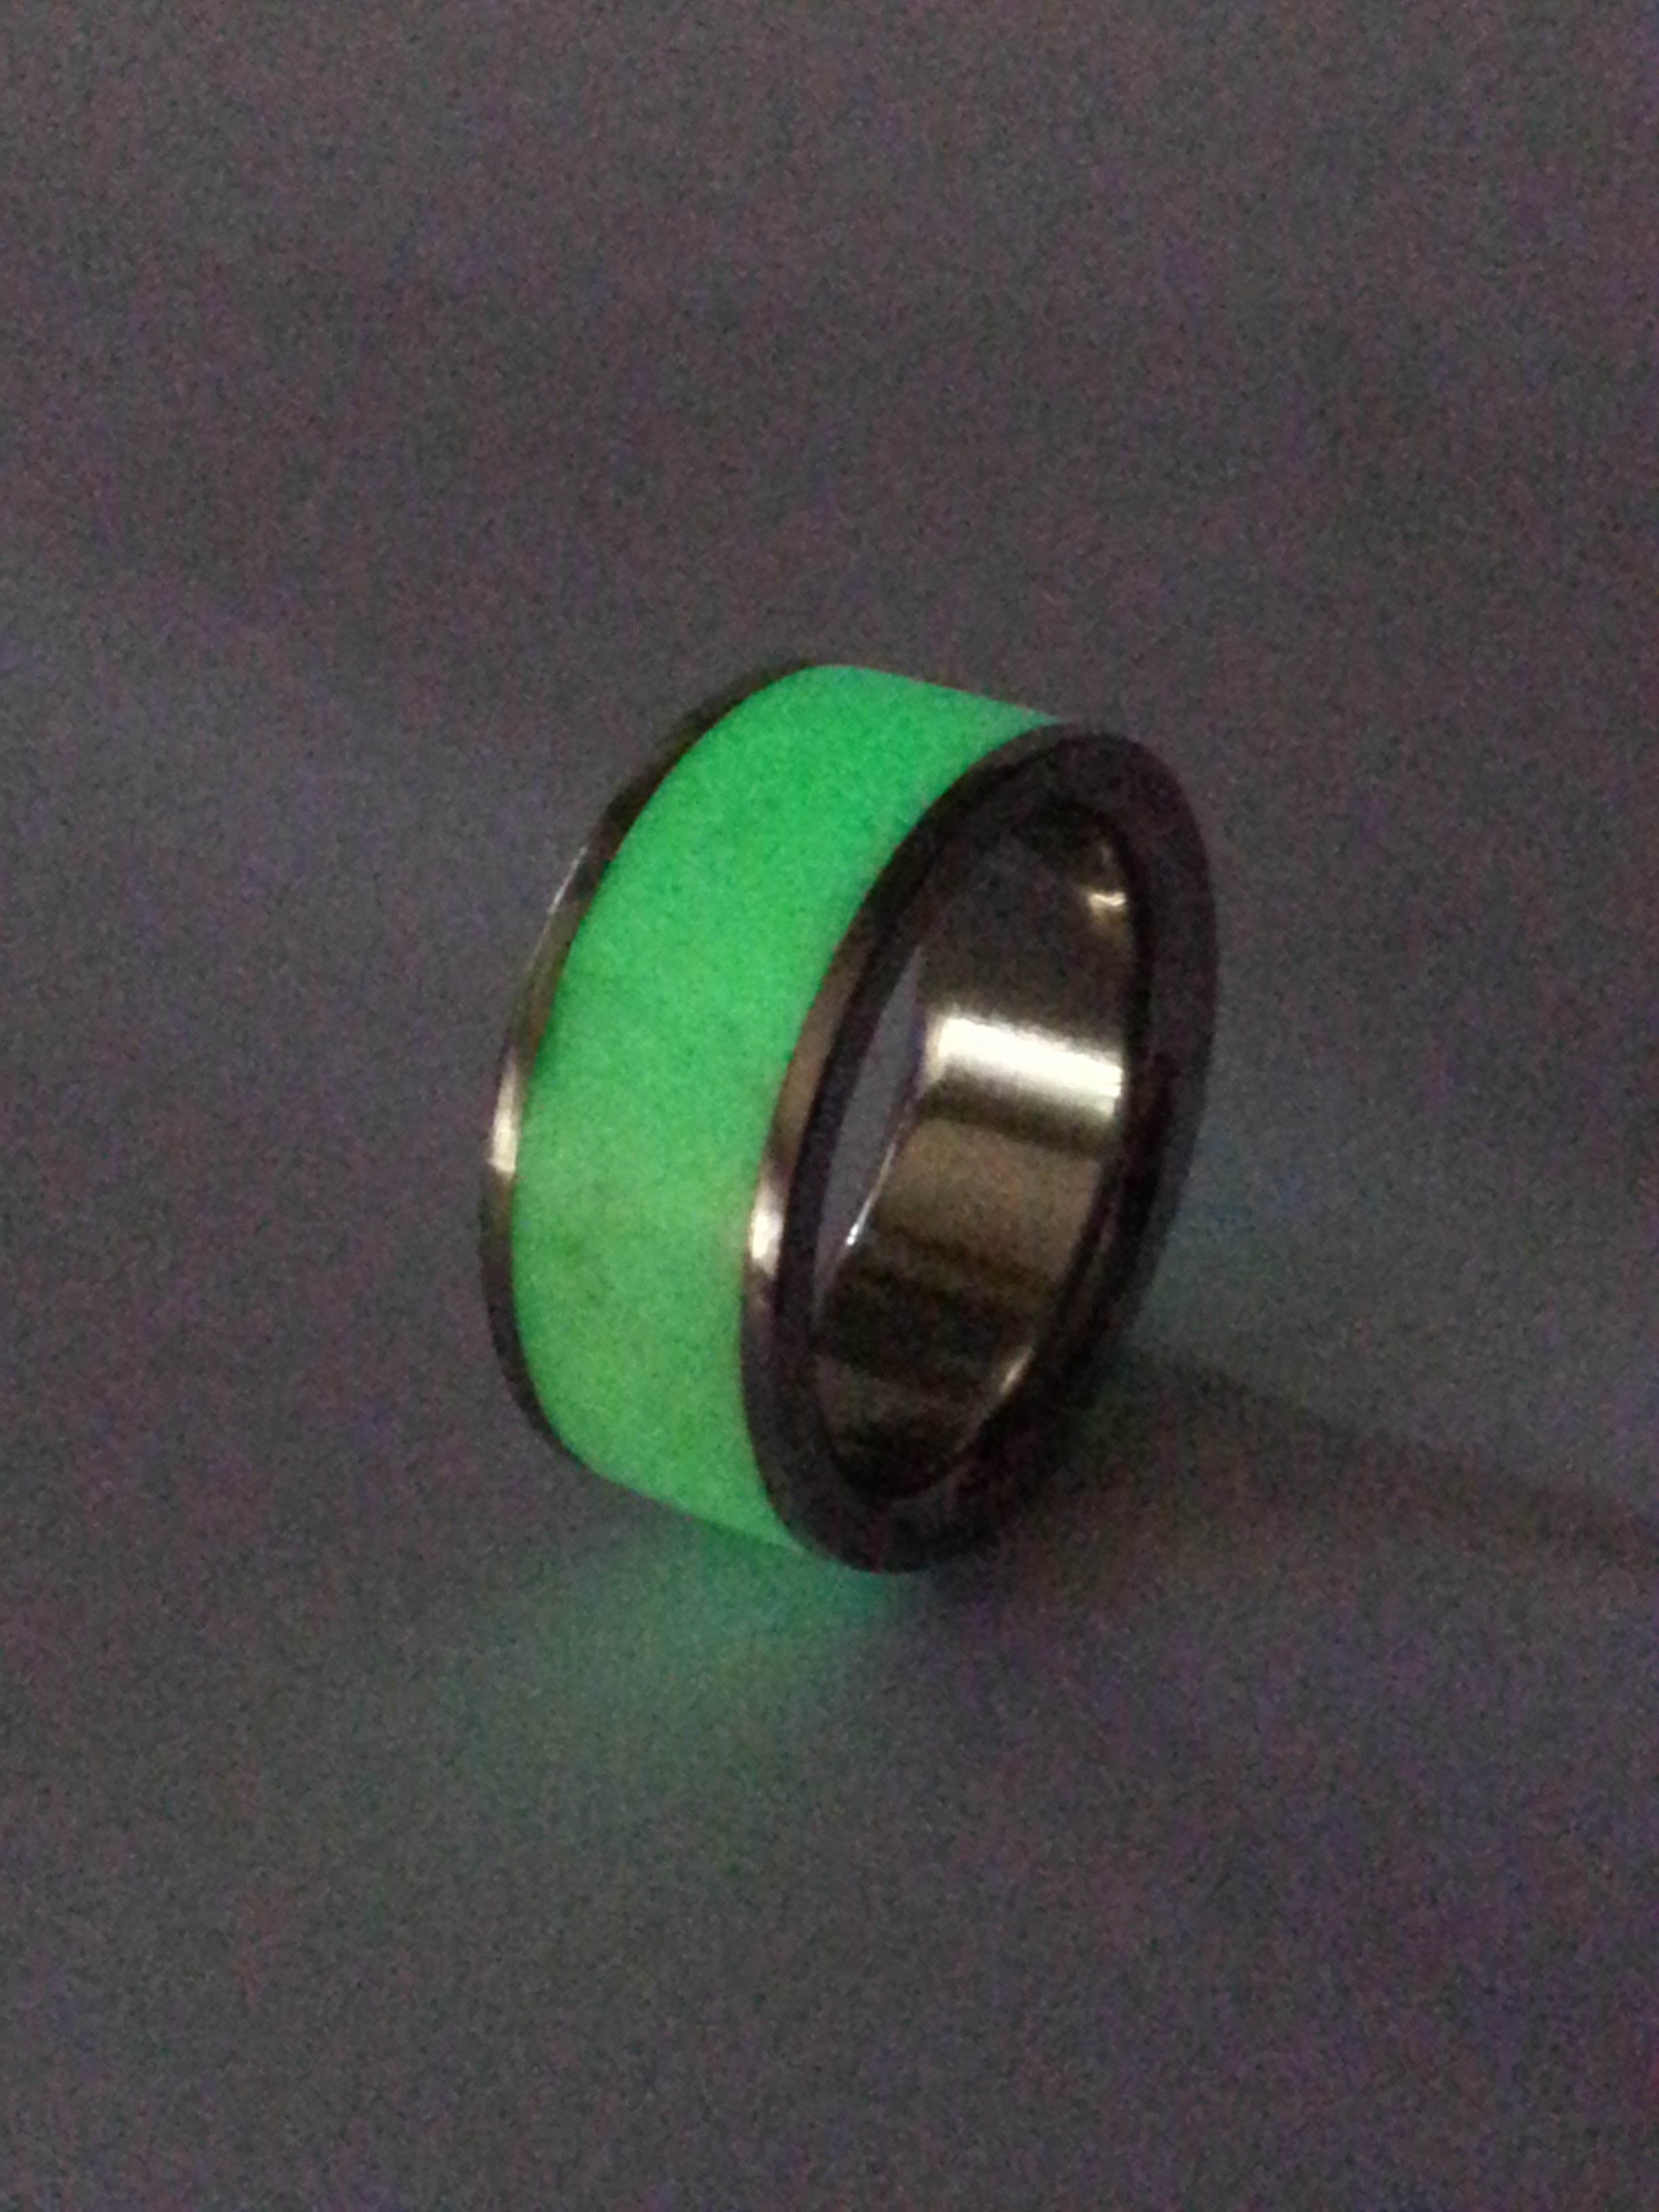 Stainless Steel Ring + Glow in the dark